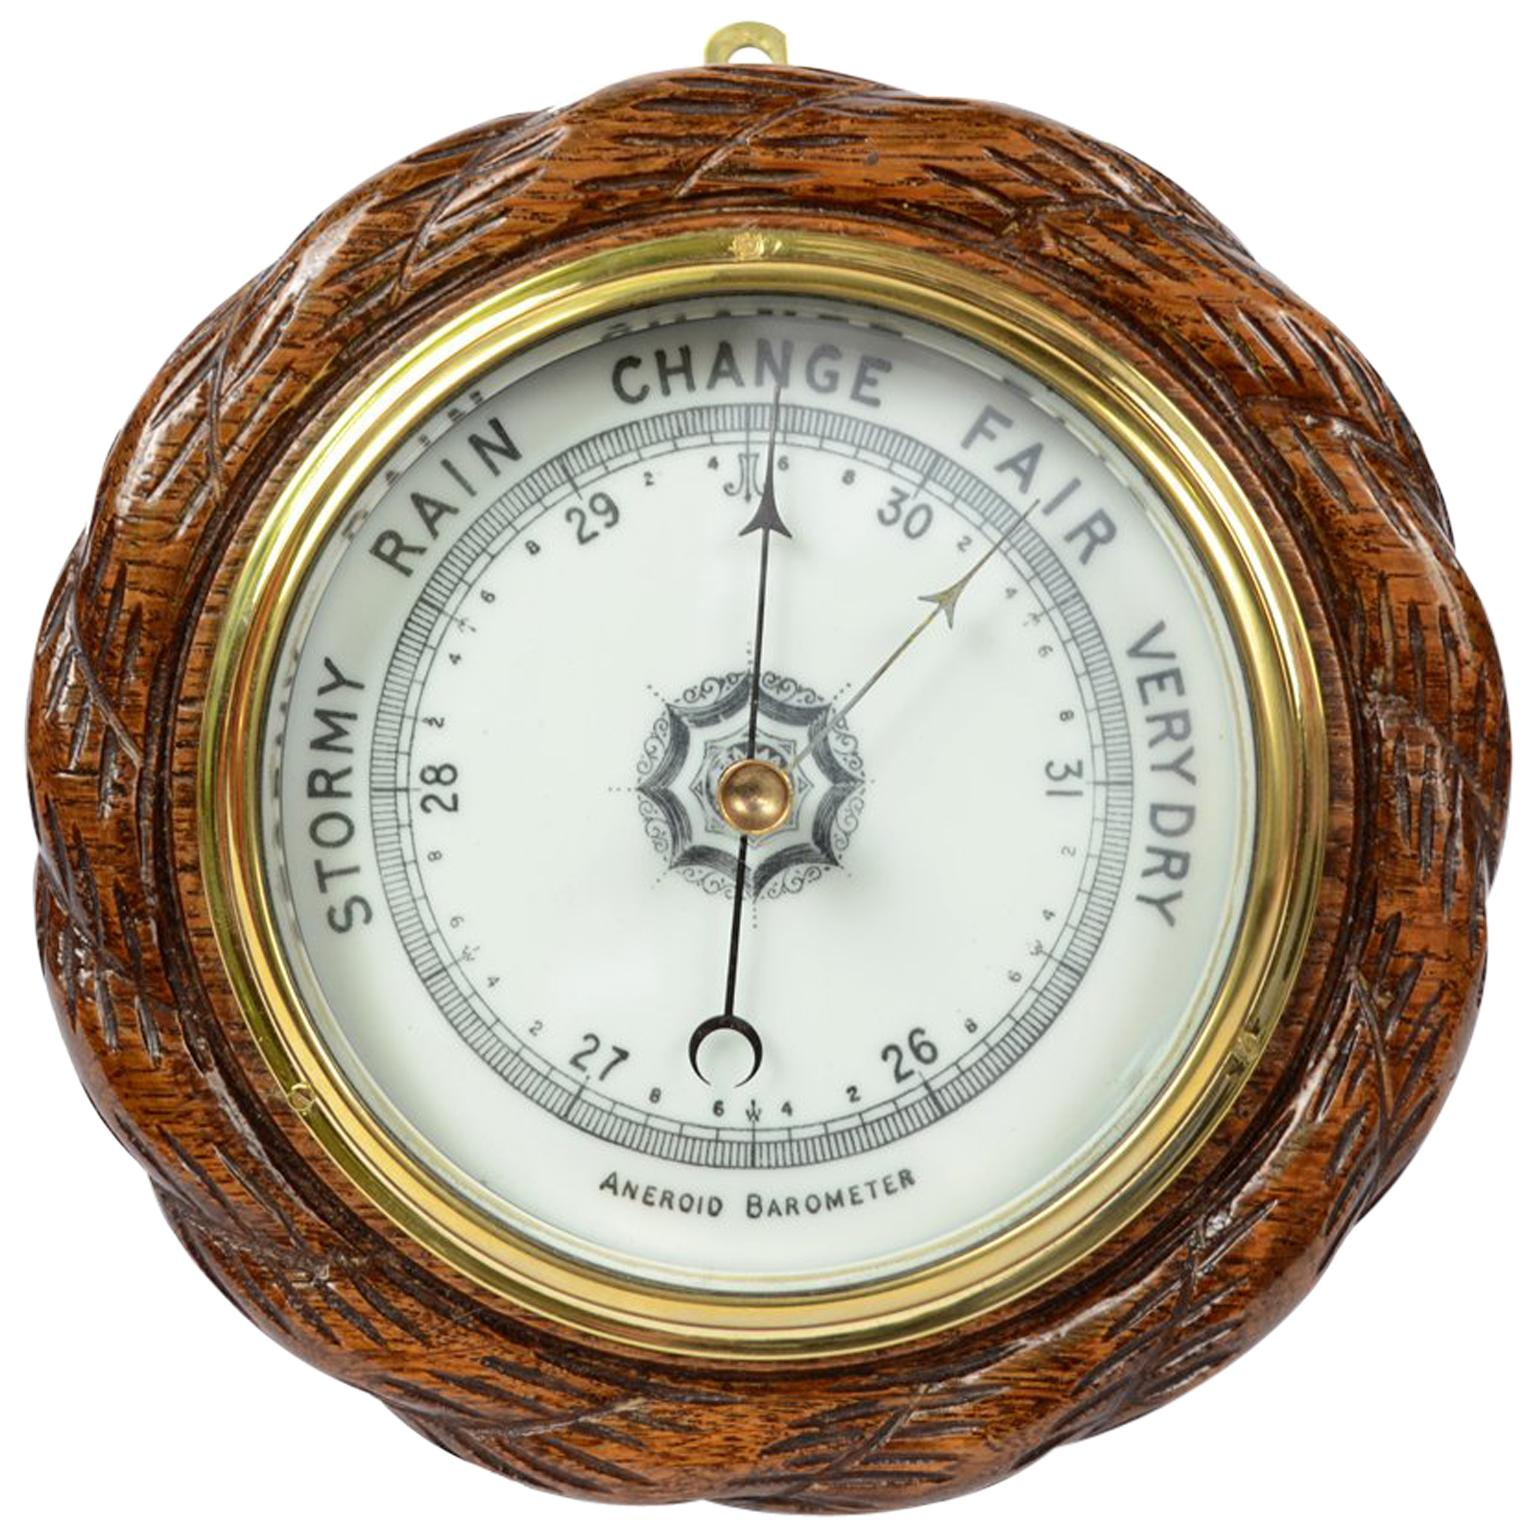 Barometer made in the Late 1800s in Oakwood Carved like a Rope